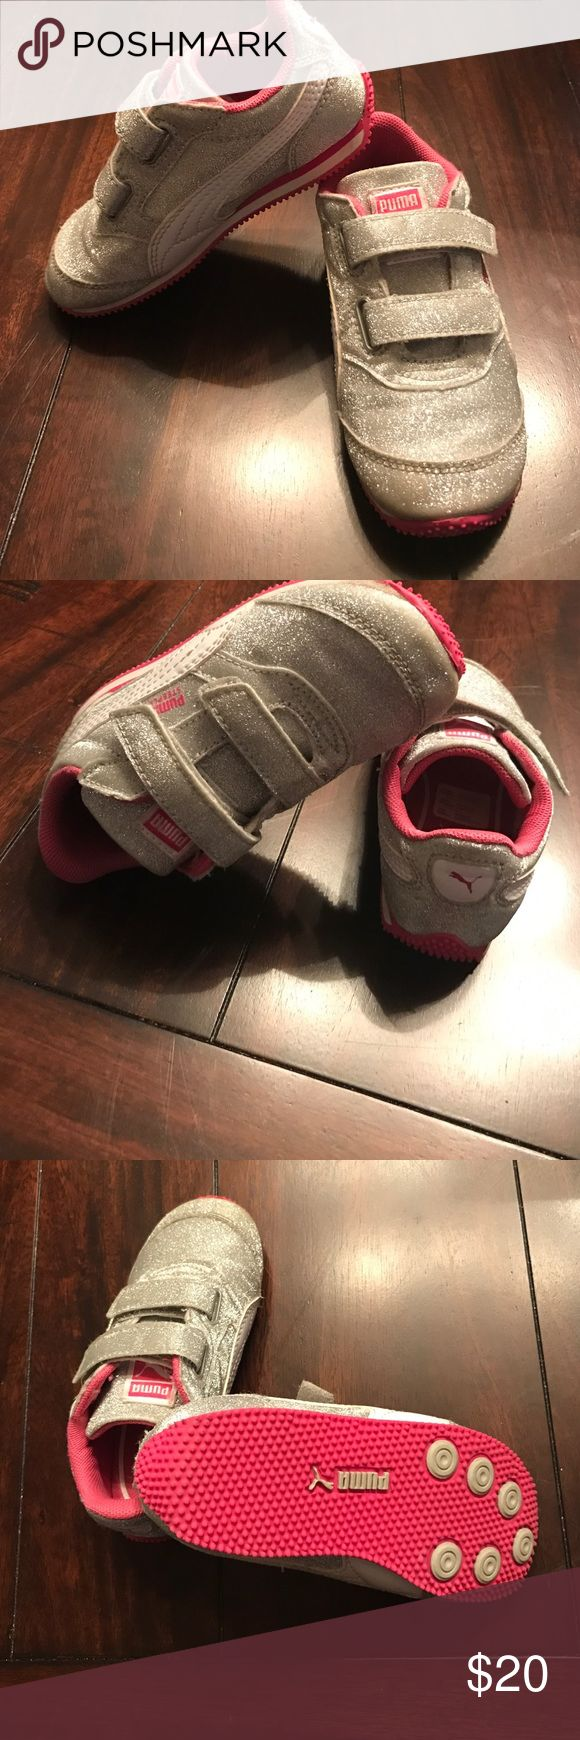 PUMA TODDLER Girls 💕⭐️💕⭐️beautiful sparkly with pink & white accents shoe for baby girl. ( only worn in the home never outside ) size toddler 8 velcro strap LIKE NEW .. make an offer ⭐️💕⭐️💕 Puma Shoes Sneakers